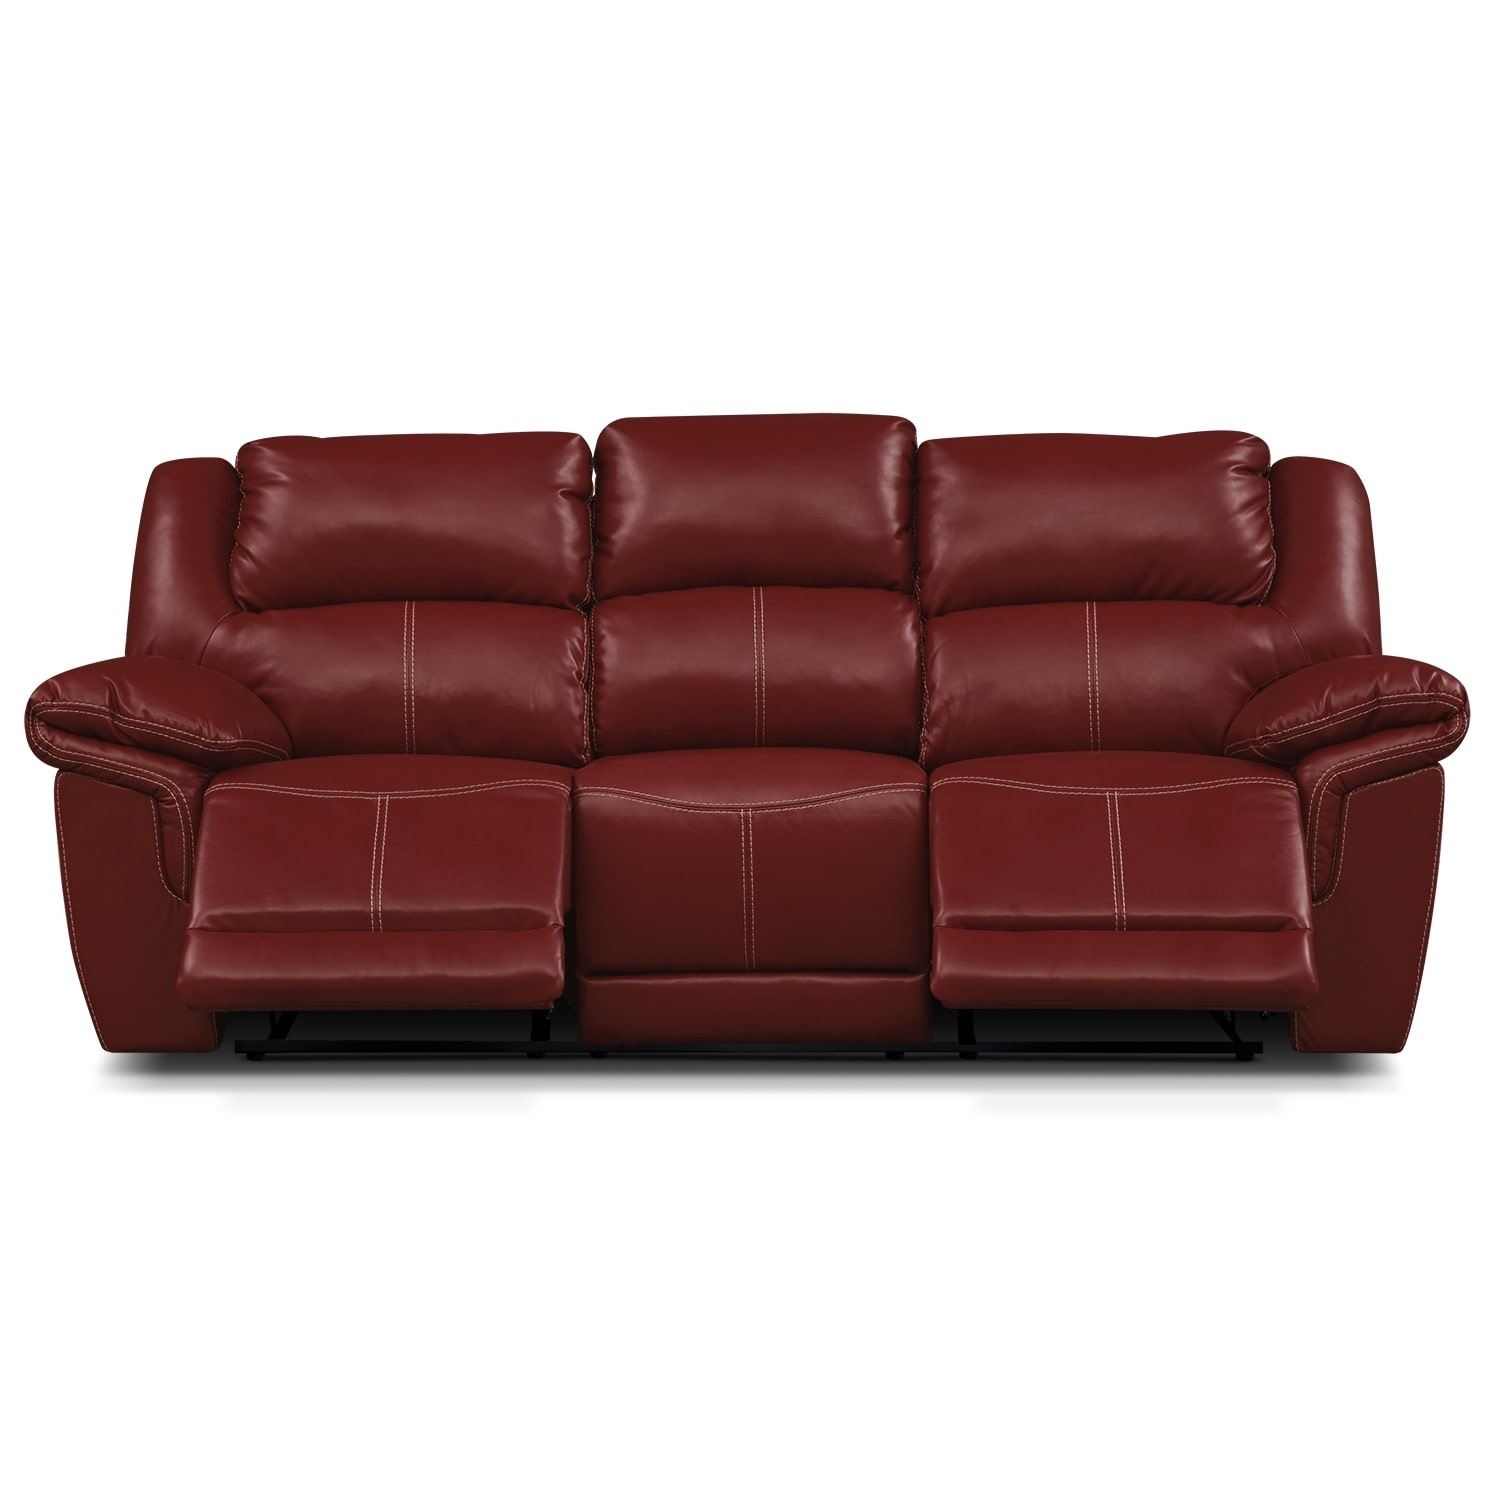 Jaguar II Leather Dual Reclining Sofa Value City Furniture : 293482 from valuecity.com size 1500 x 1500 jpeg 387kB